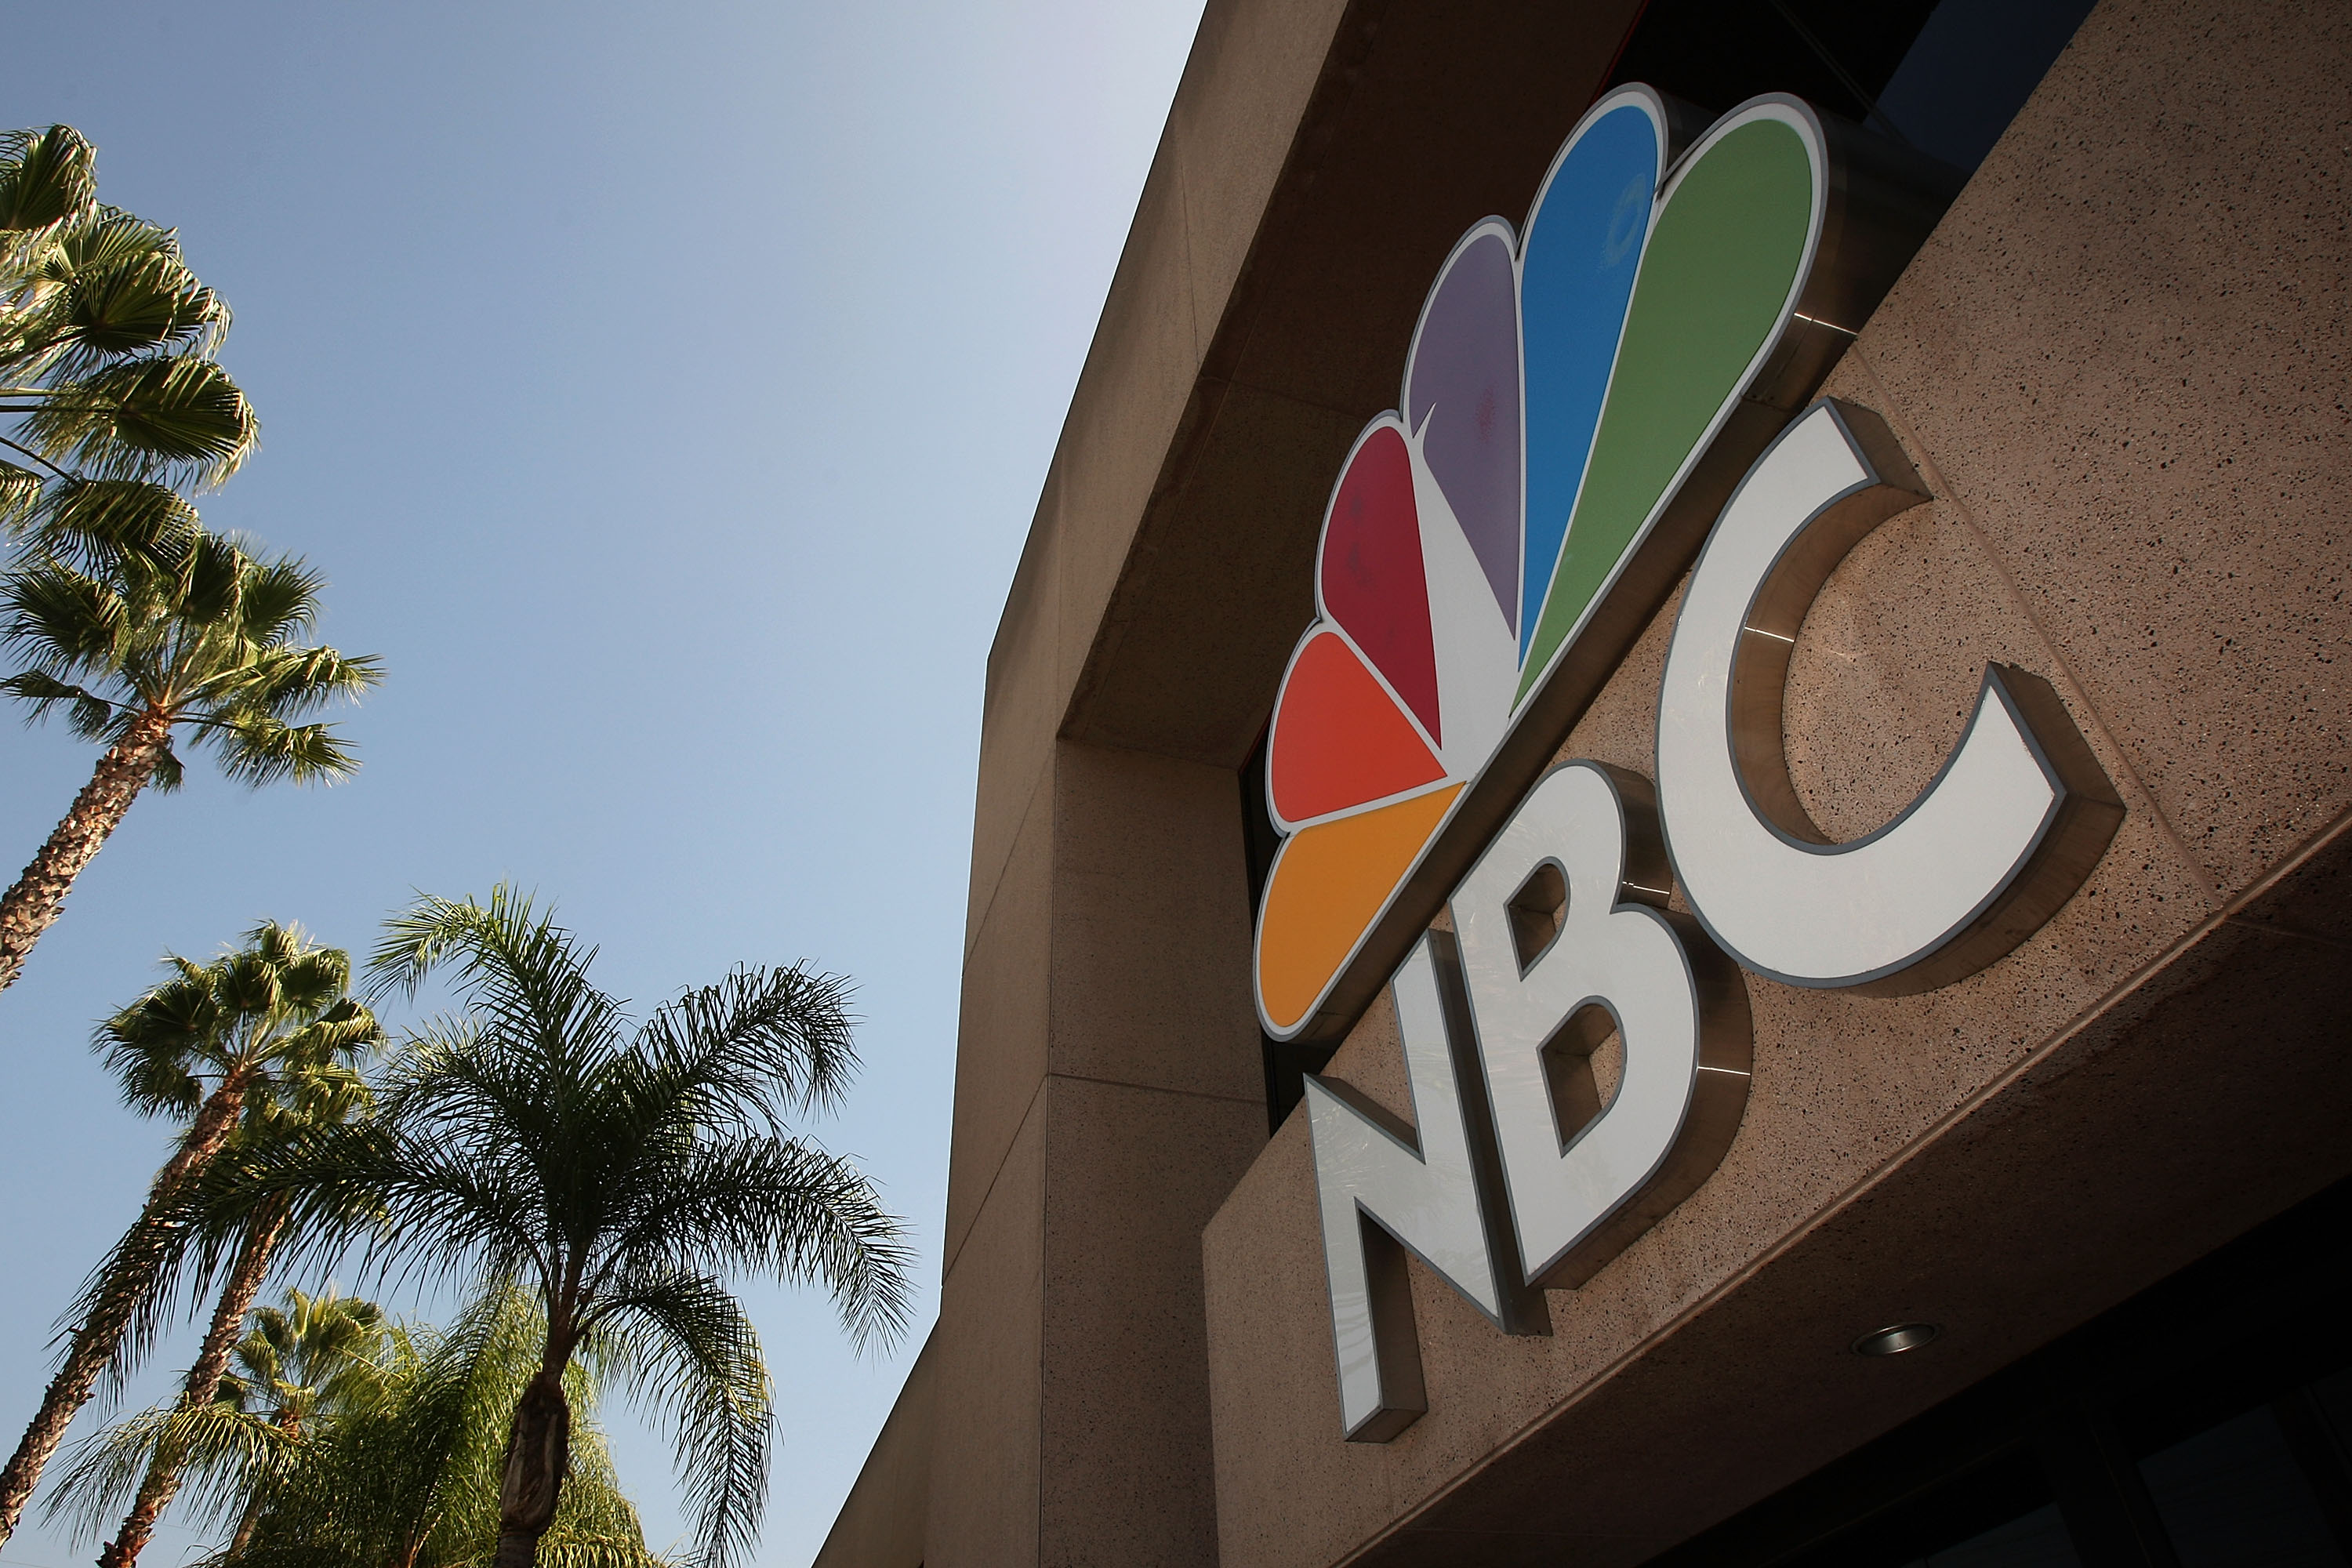 BURBANK, CA - OCTOBER 20: The NBC peacock logo hangs on the NBC studios building on October 20, 2008 in Burbank, California. NBC Universal plans another round of major cuts totaling $500 million from the next yearly budget in spite of recent strong quarterly reports. The cuts come as the media sector copes with recent market turmoil that sent stock prices for many major conglomerates plunging to all-time lows, as much as 70 percent for the past year. NBC Universal stations are facing a serious local ad slump while its parent company, General Electric, is facing financial problems with heavy reliance on financial services in an environment of frozen credit. (Photo by David McNew/Getty Images)